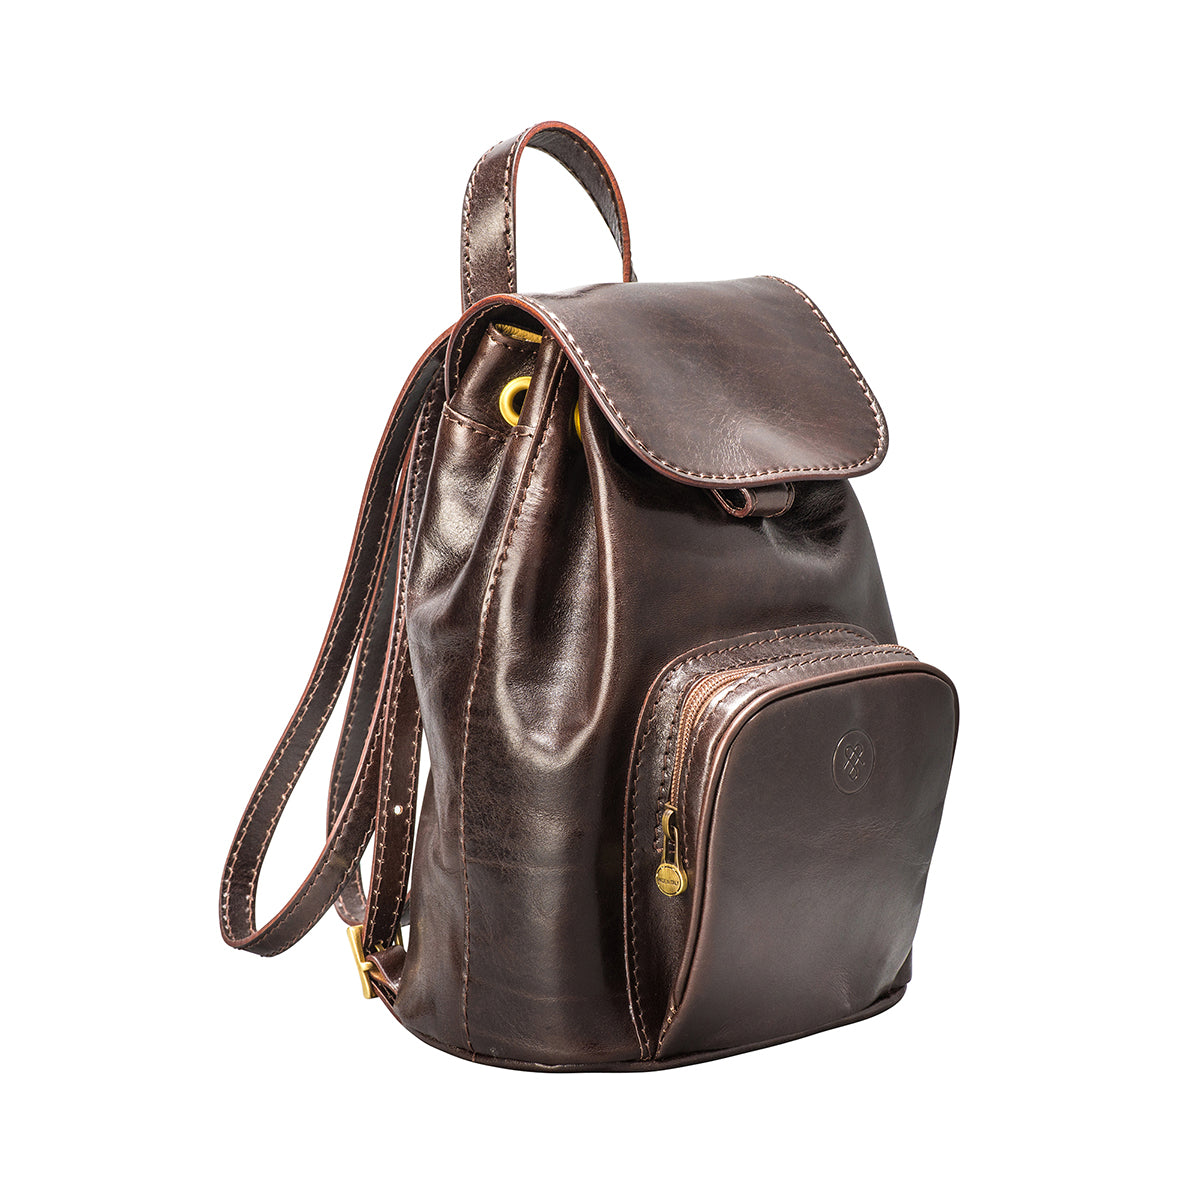 Image 2 of the 'Popolo' Compact Dark Chocolate Veg-Tanned Leather Shoulder Bag